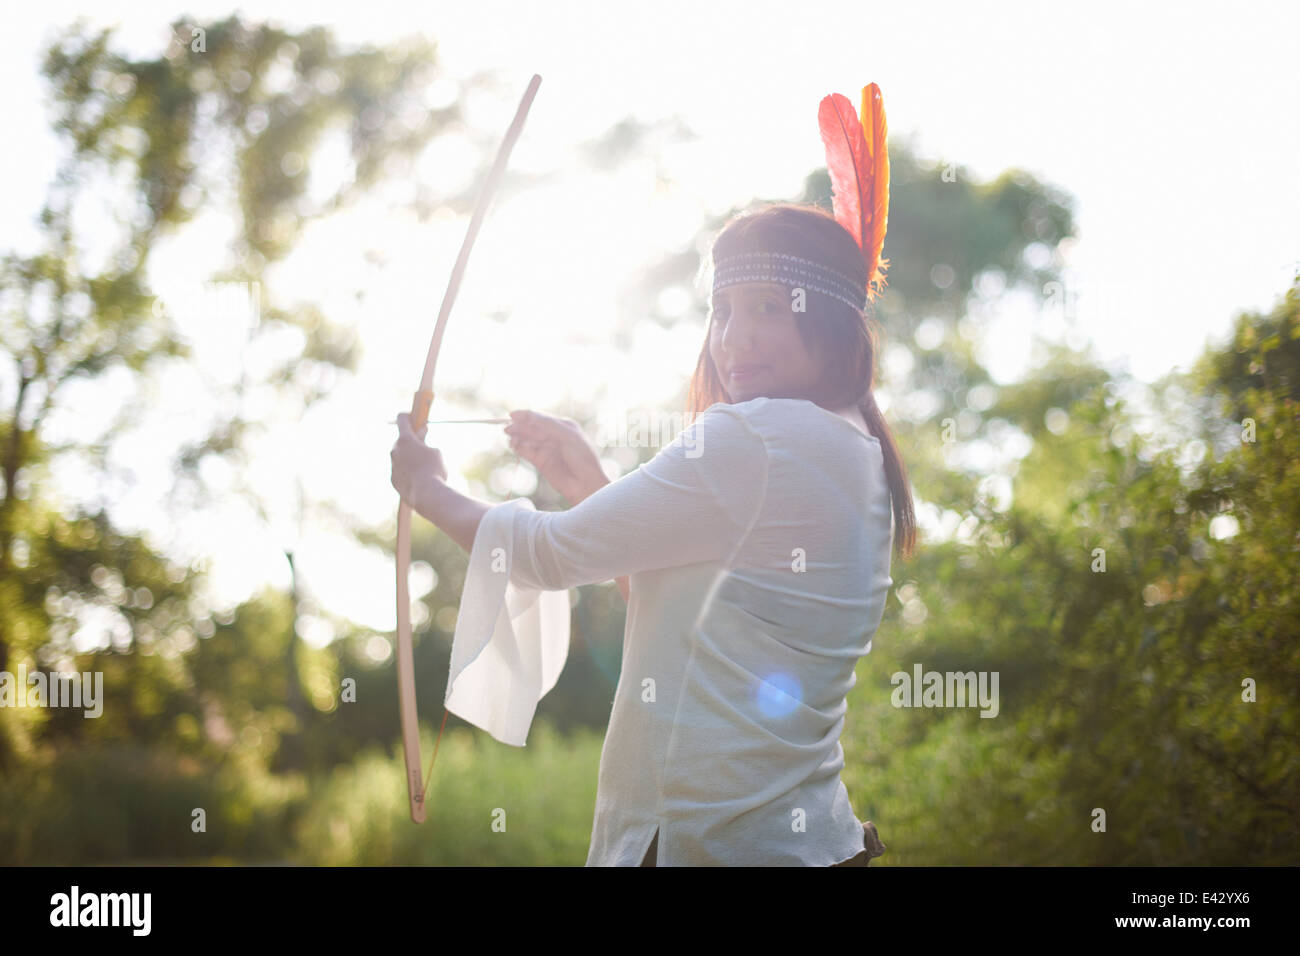 Portrait of mature woman in woodlands aiming bow and arrow - Stock Image